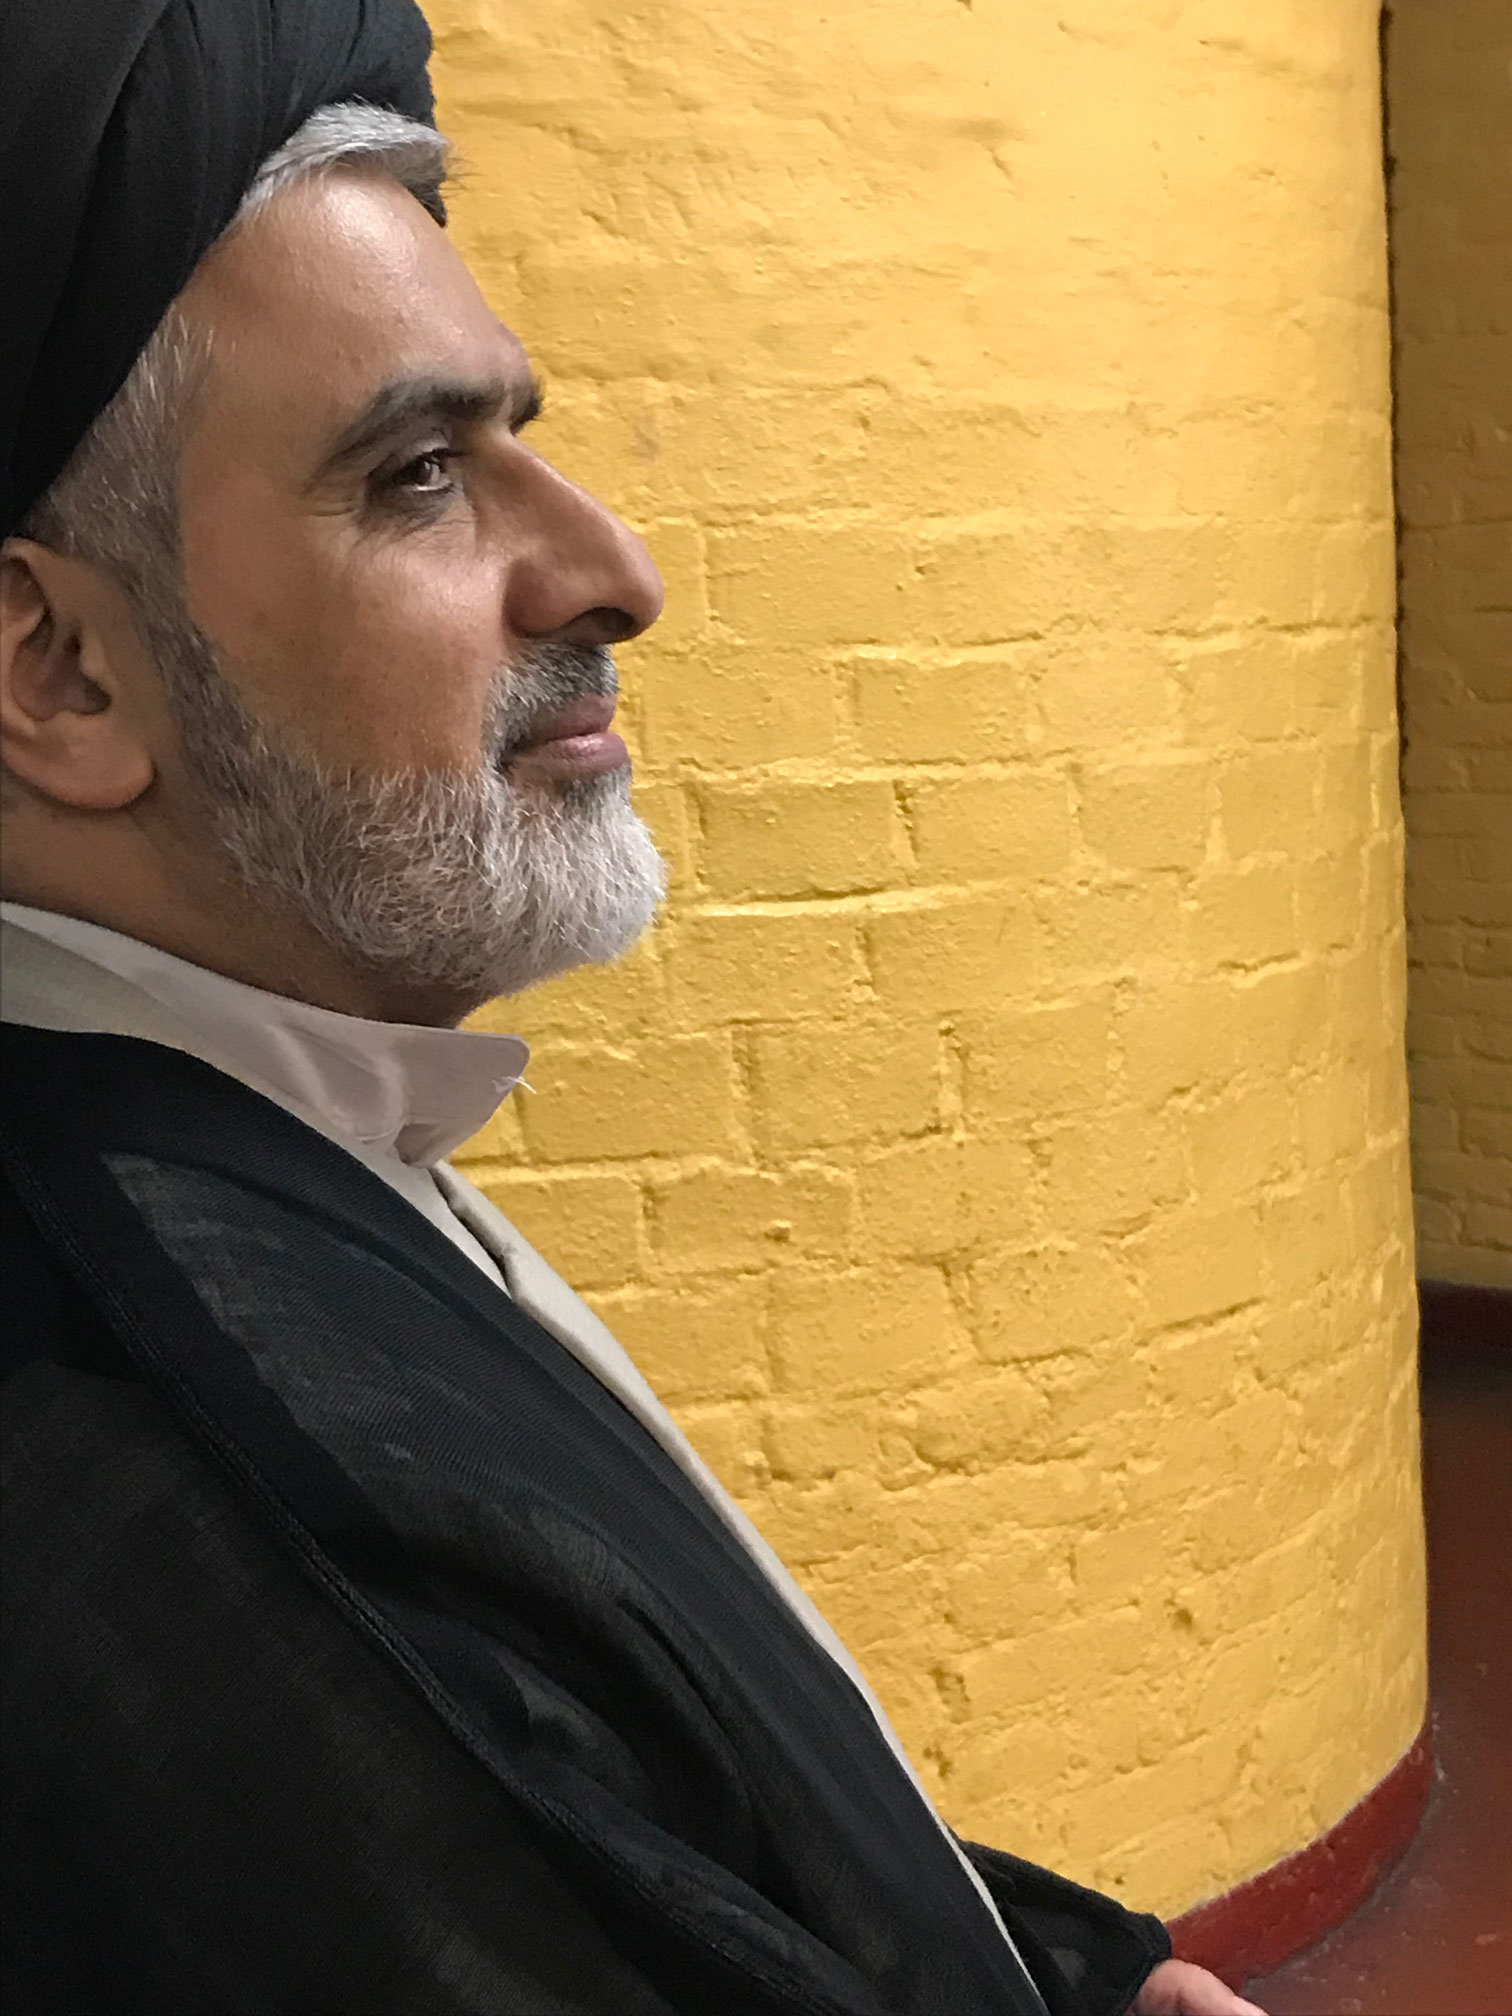 Picture of Seyedzyaoddin Salehi from profile on the Grand debate on ritual slaughter ban that has been introduced in Belgium;